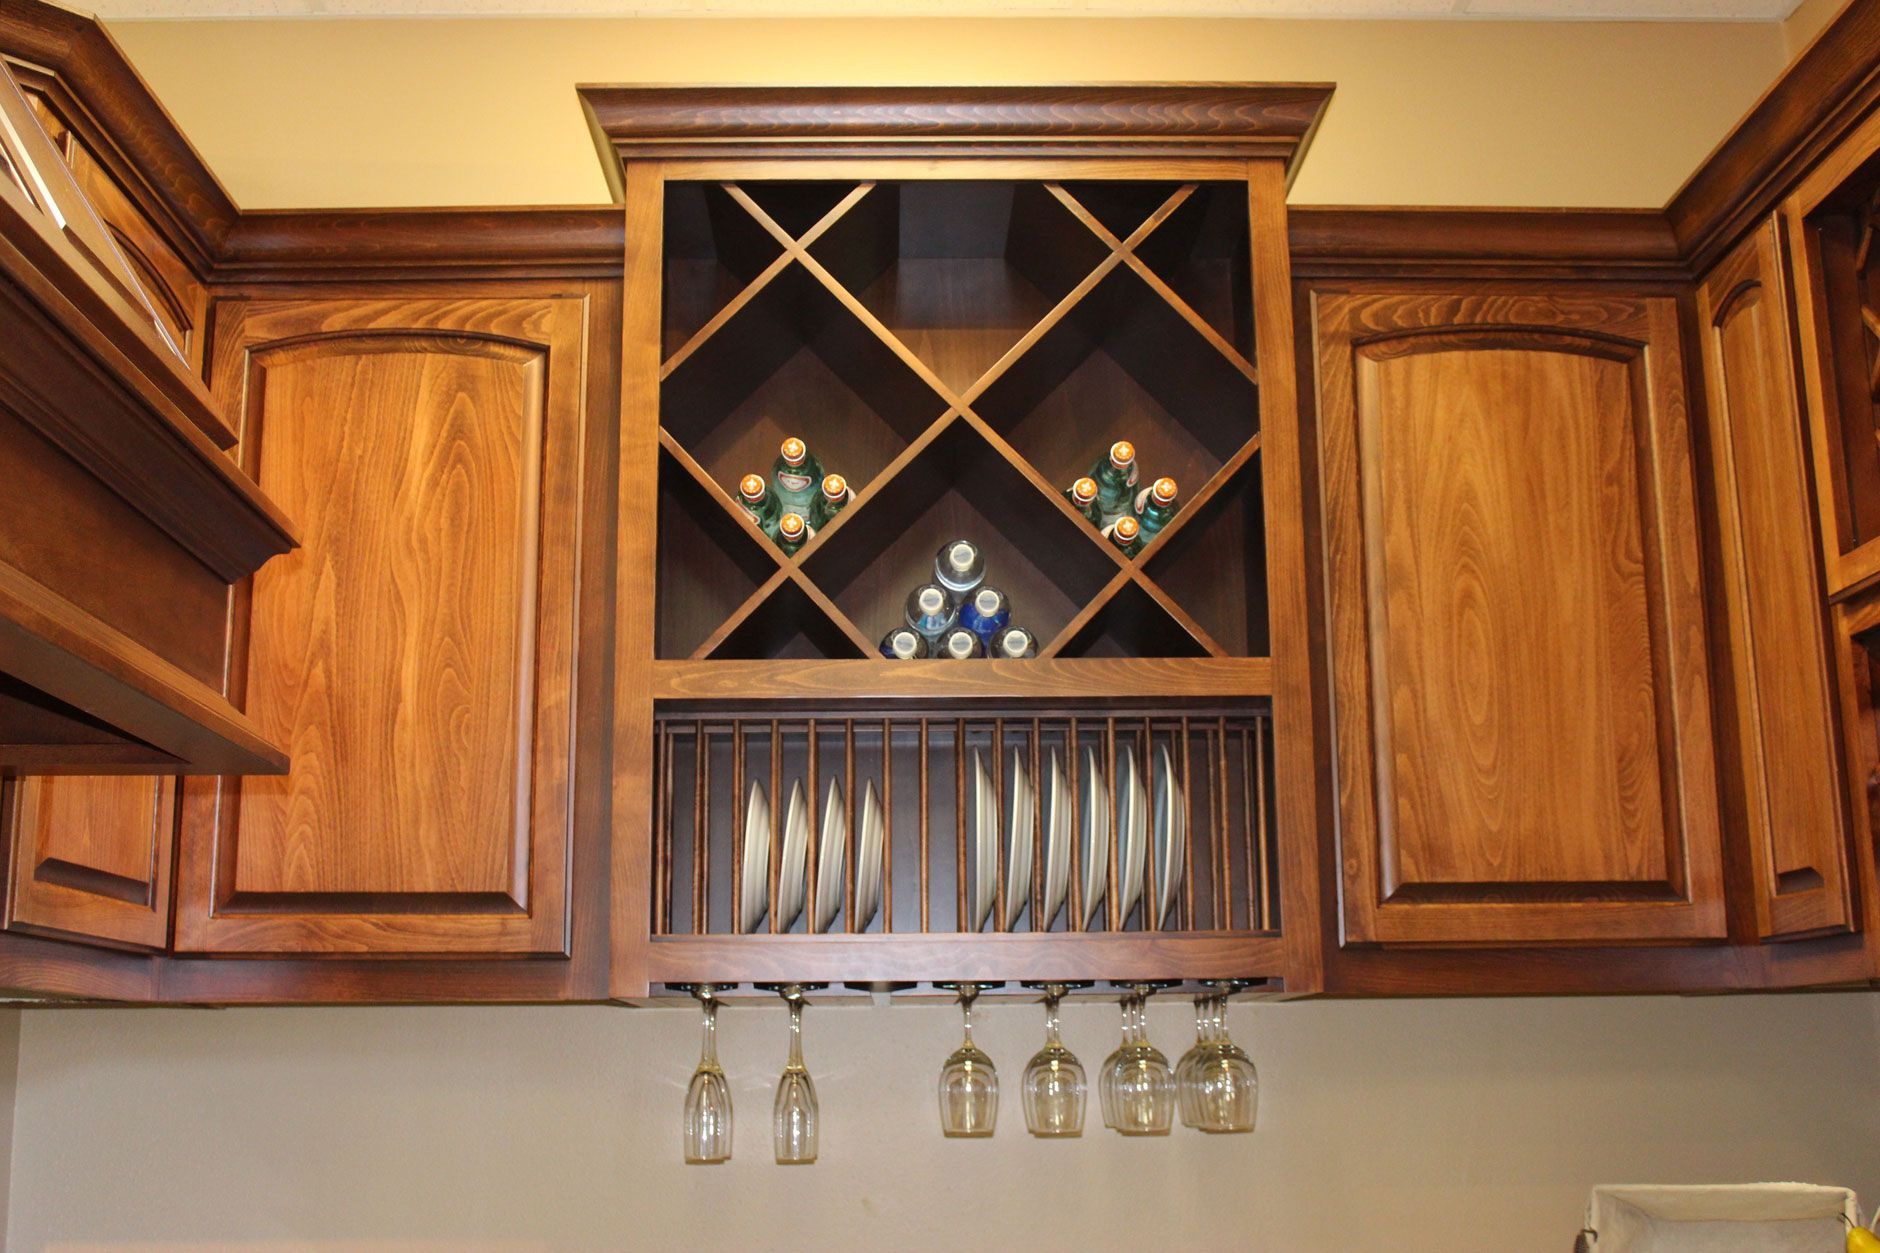 Wine Rack Big X Style Burrows Cabinets Central Texas Builder Direct Custom Cabinets Kitchen Cabinet Design Kitchen Shelf Design Kitchen Cabinets